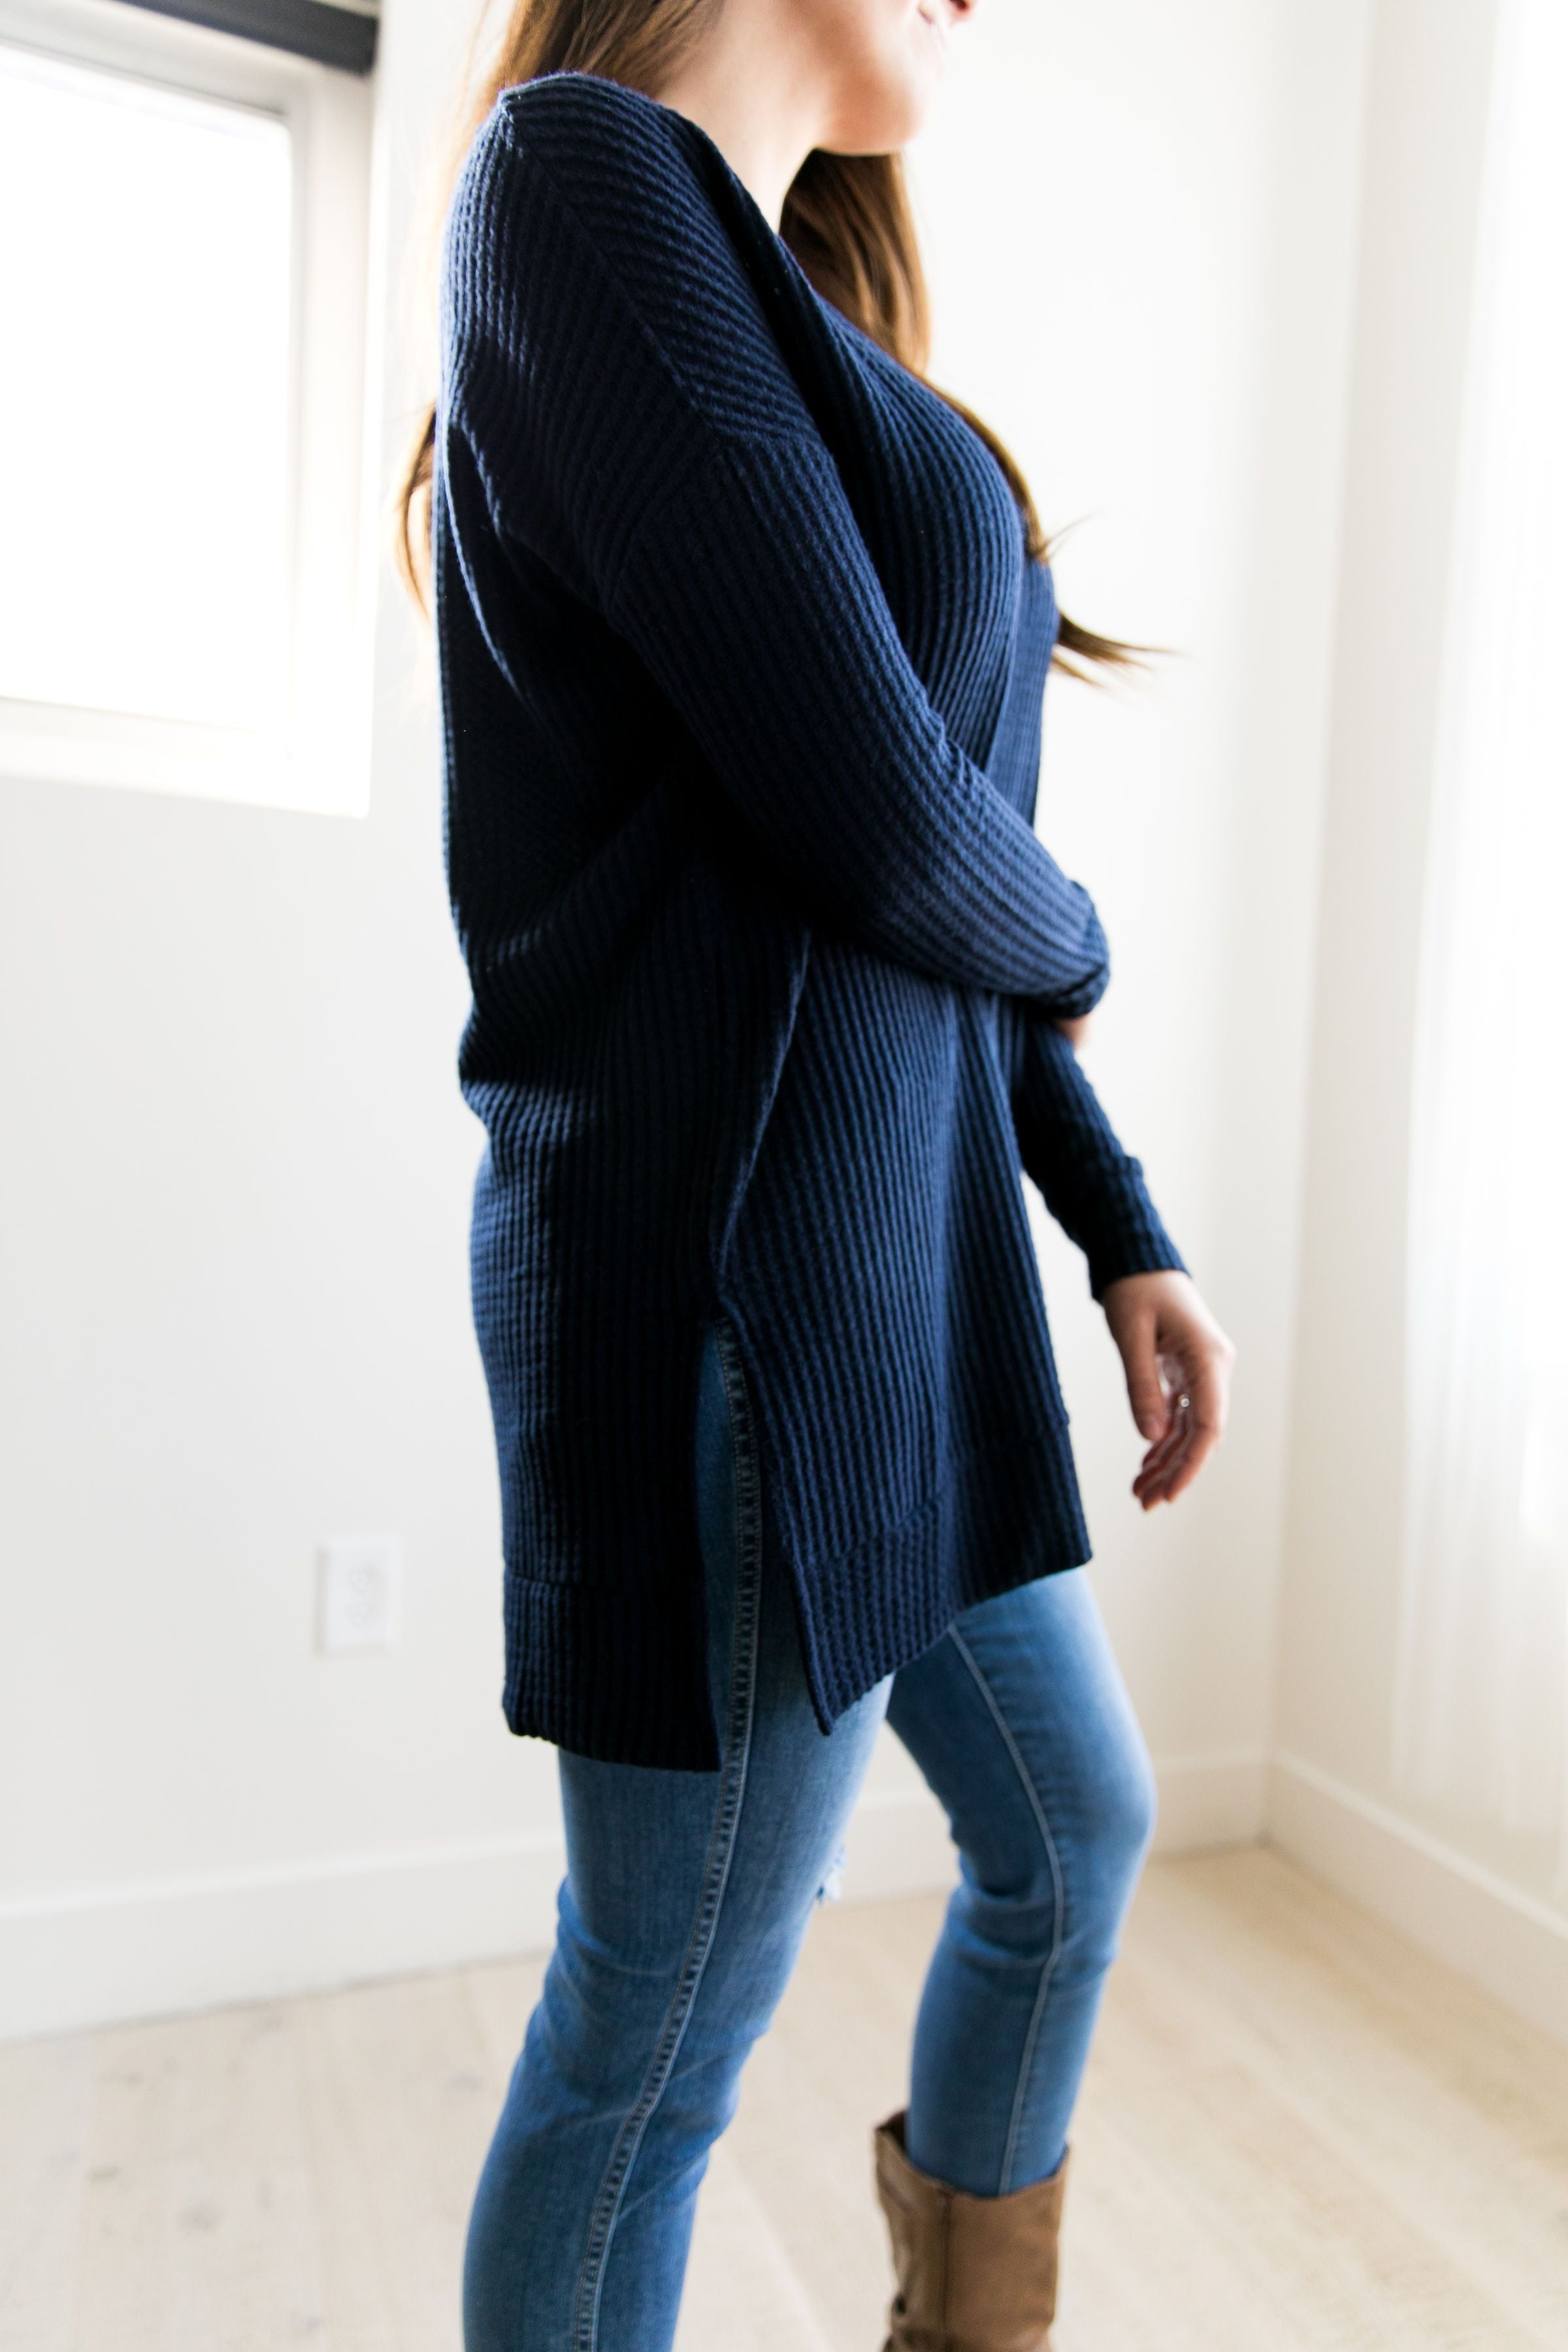 Thermal Tunic In Navy - ALL SALES FINAL